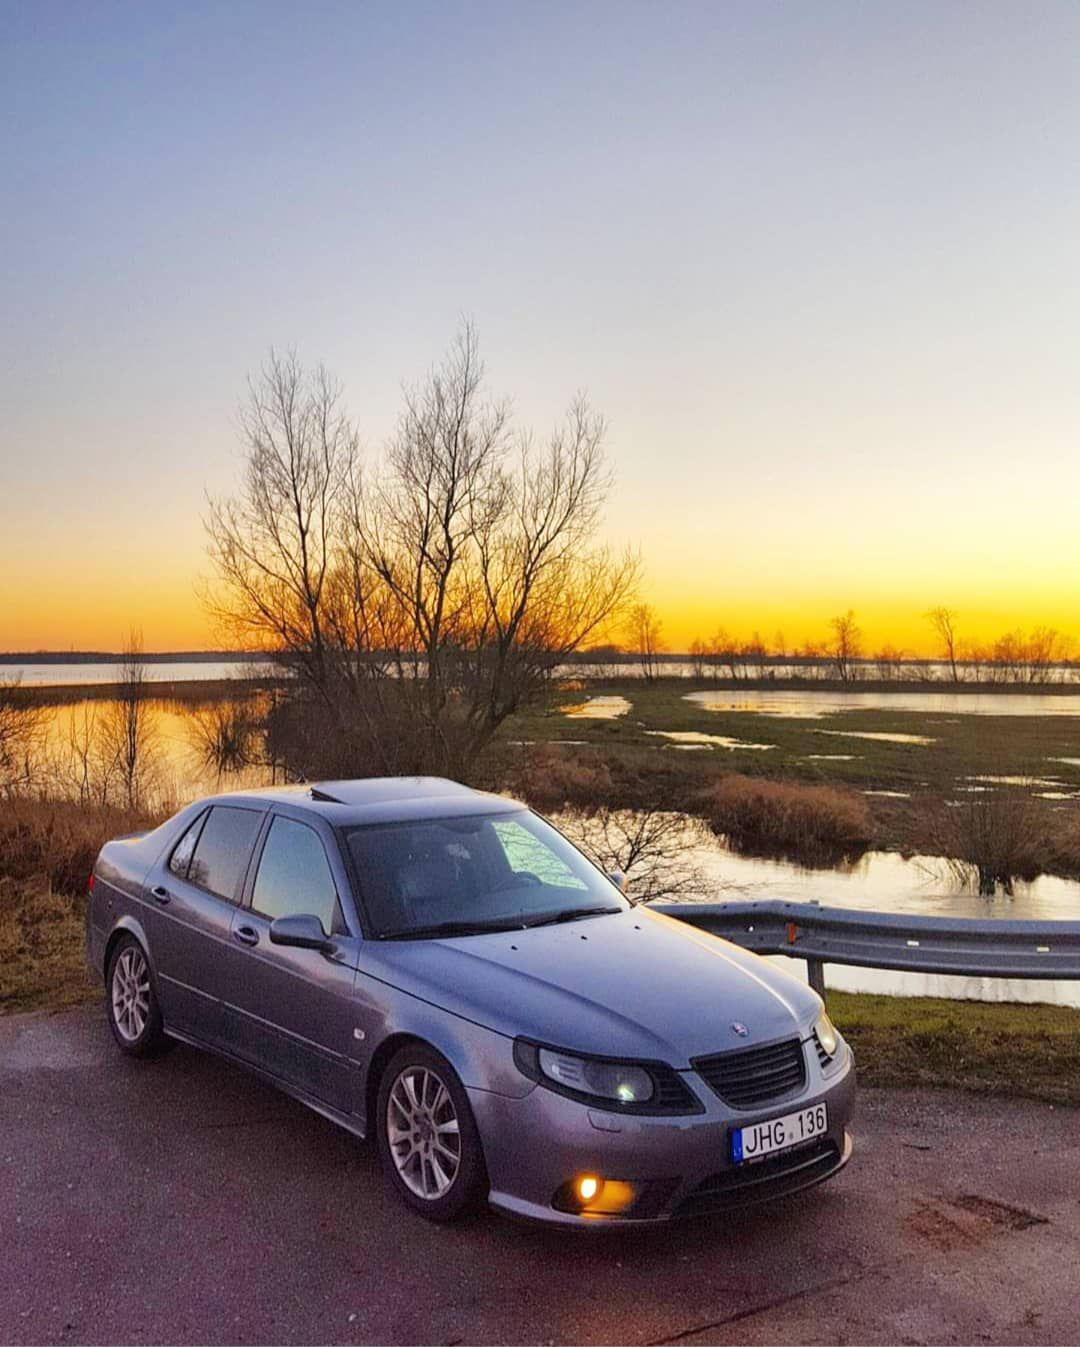 Saab North On Instagram Lukanis1 Daily Has This Awsome Saab 9 5 With A 9 3 Front Bumper Saab Instagram Awsome